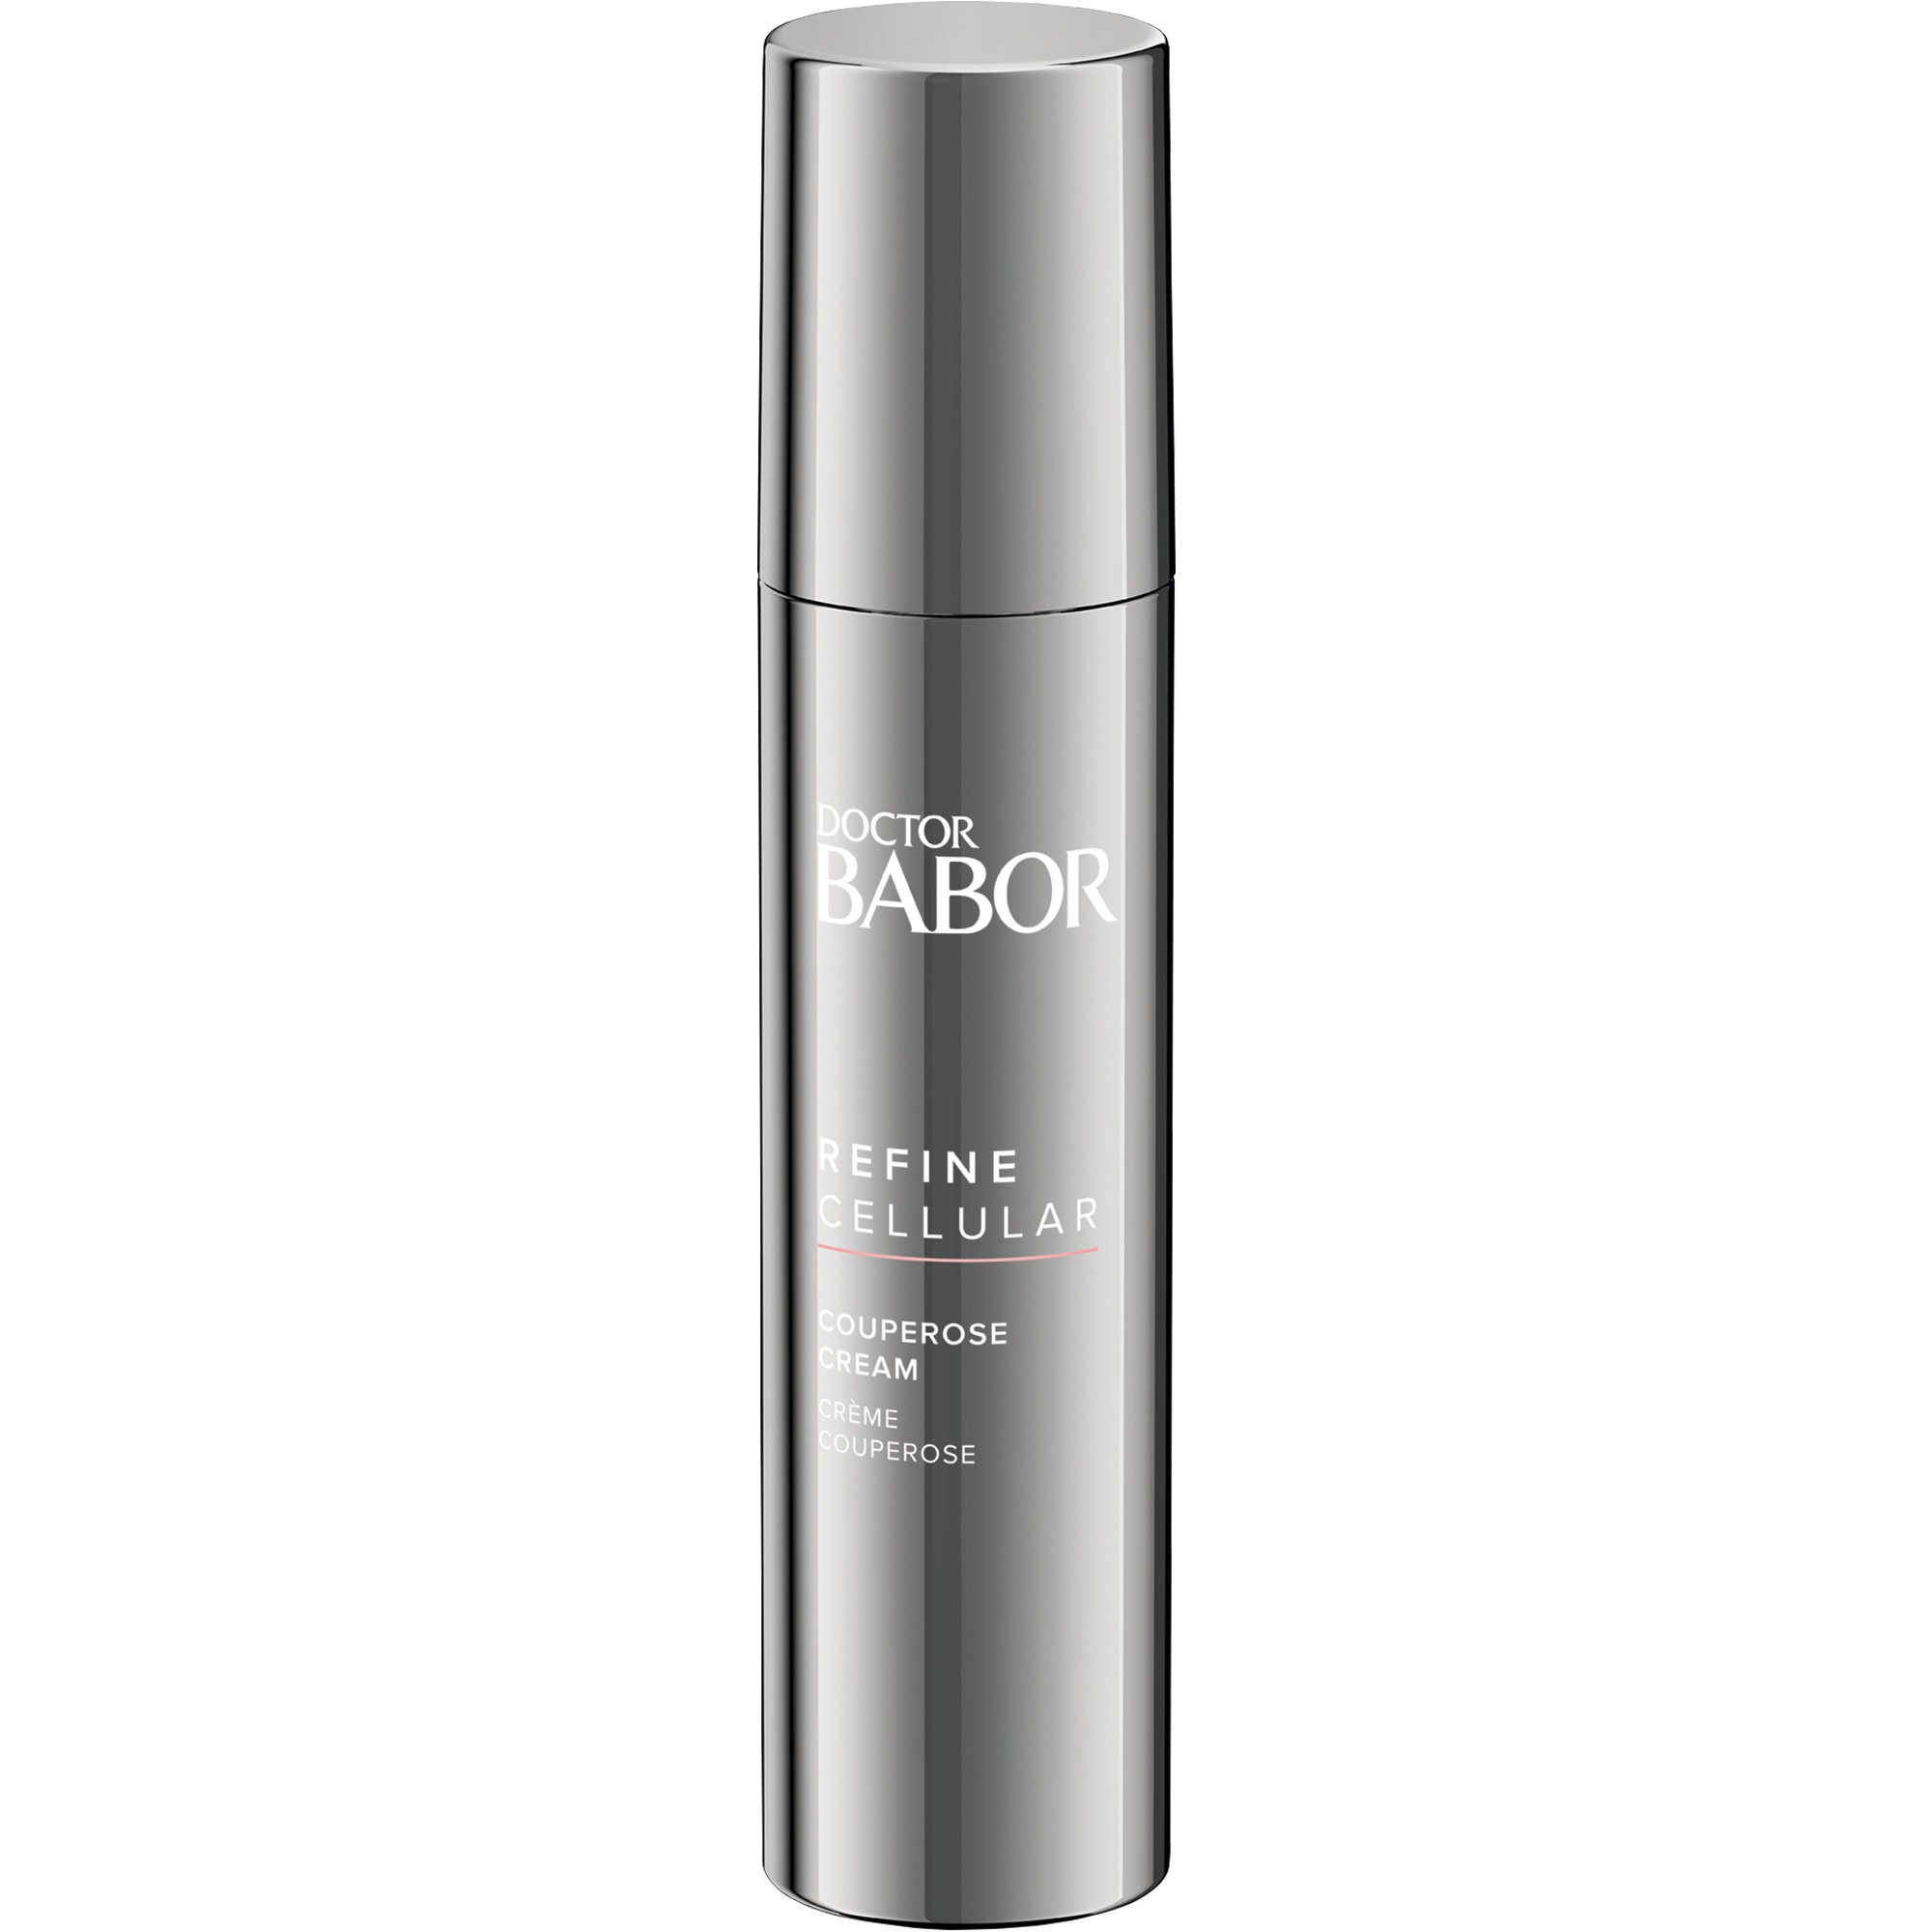 Bilde av Doctor Babor Refine Cellular Couperose Cream 50 Ml